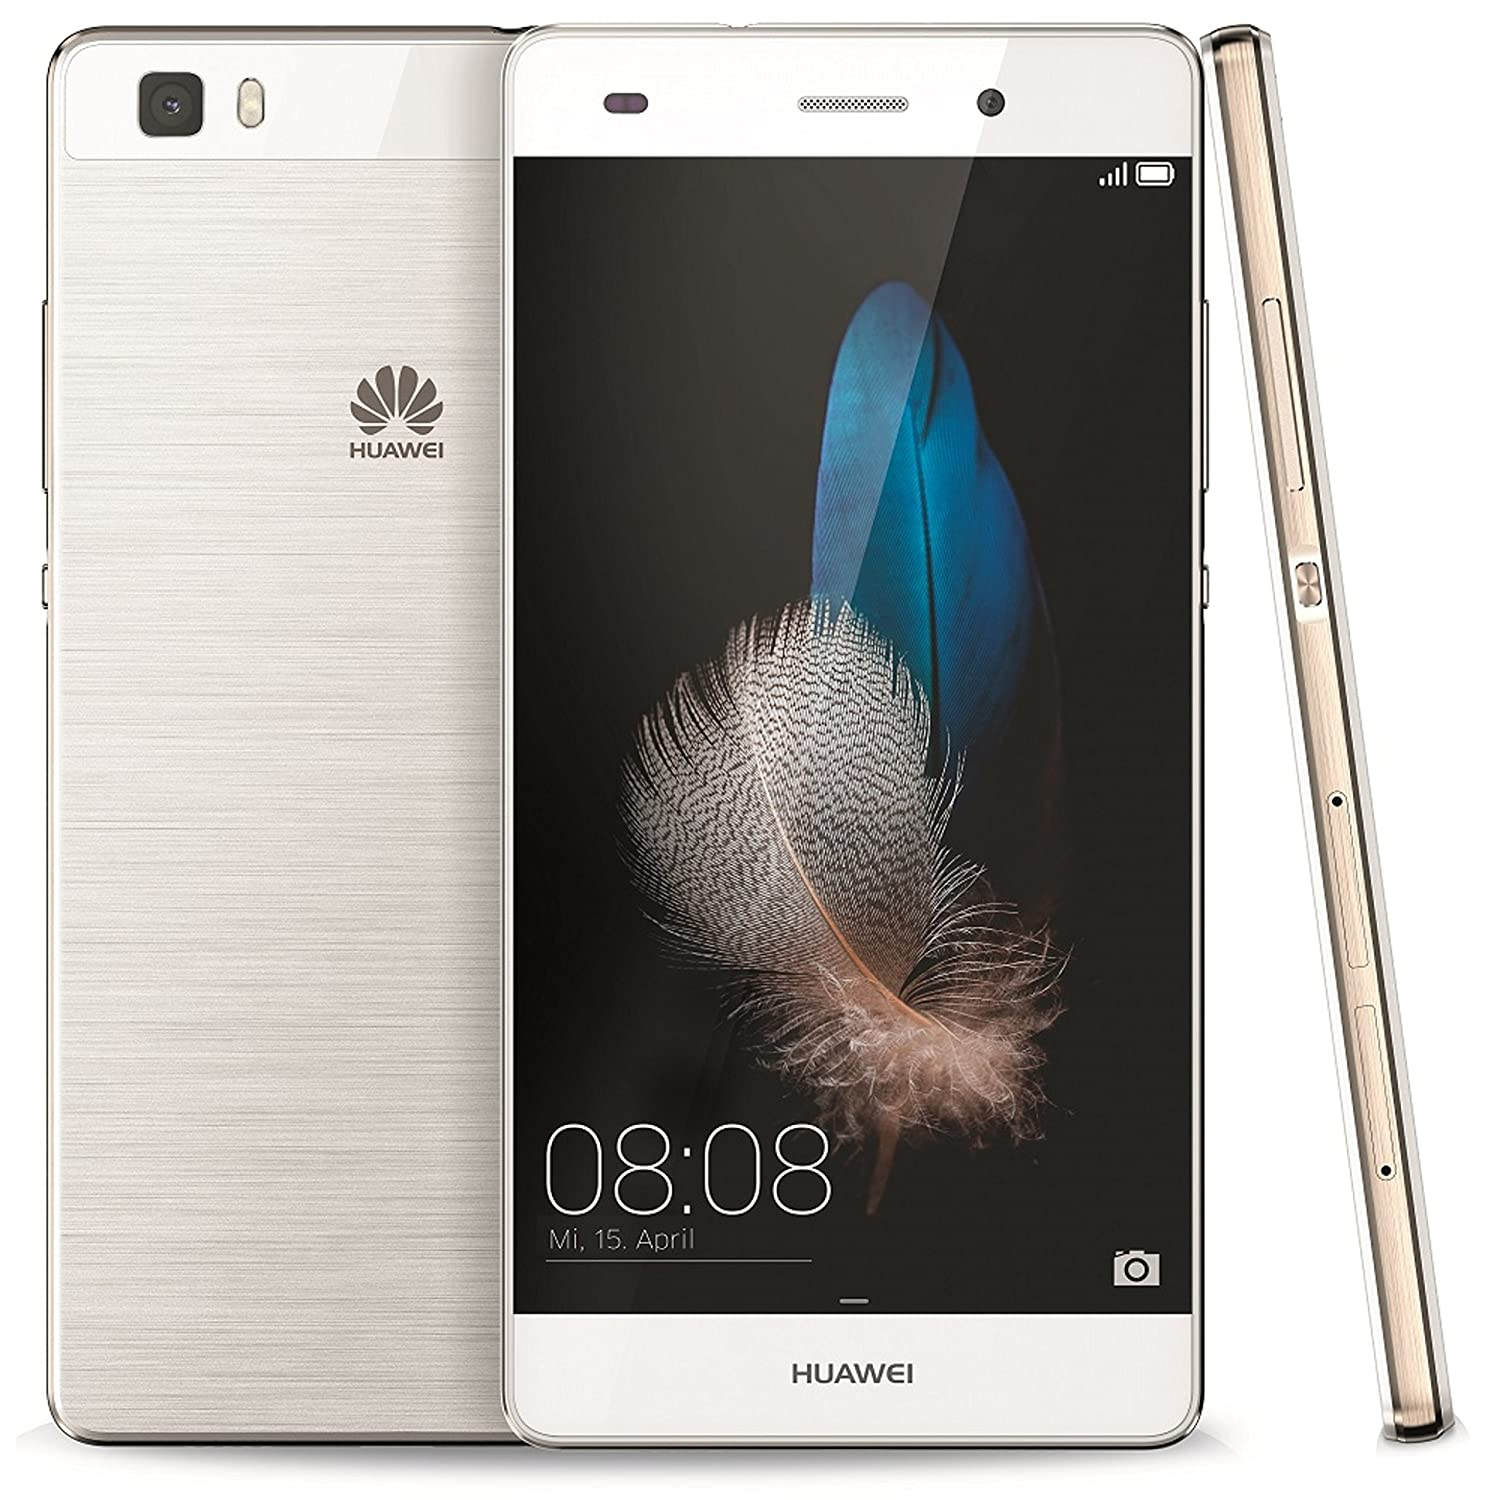 Huawei P8 Lite ALE-L23 Factory Unlocked 16GB Latin Version (American 4G LTE Bands)(Gold)